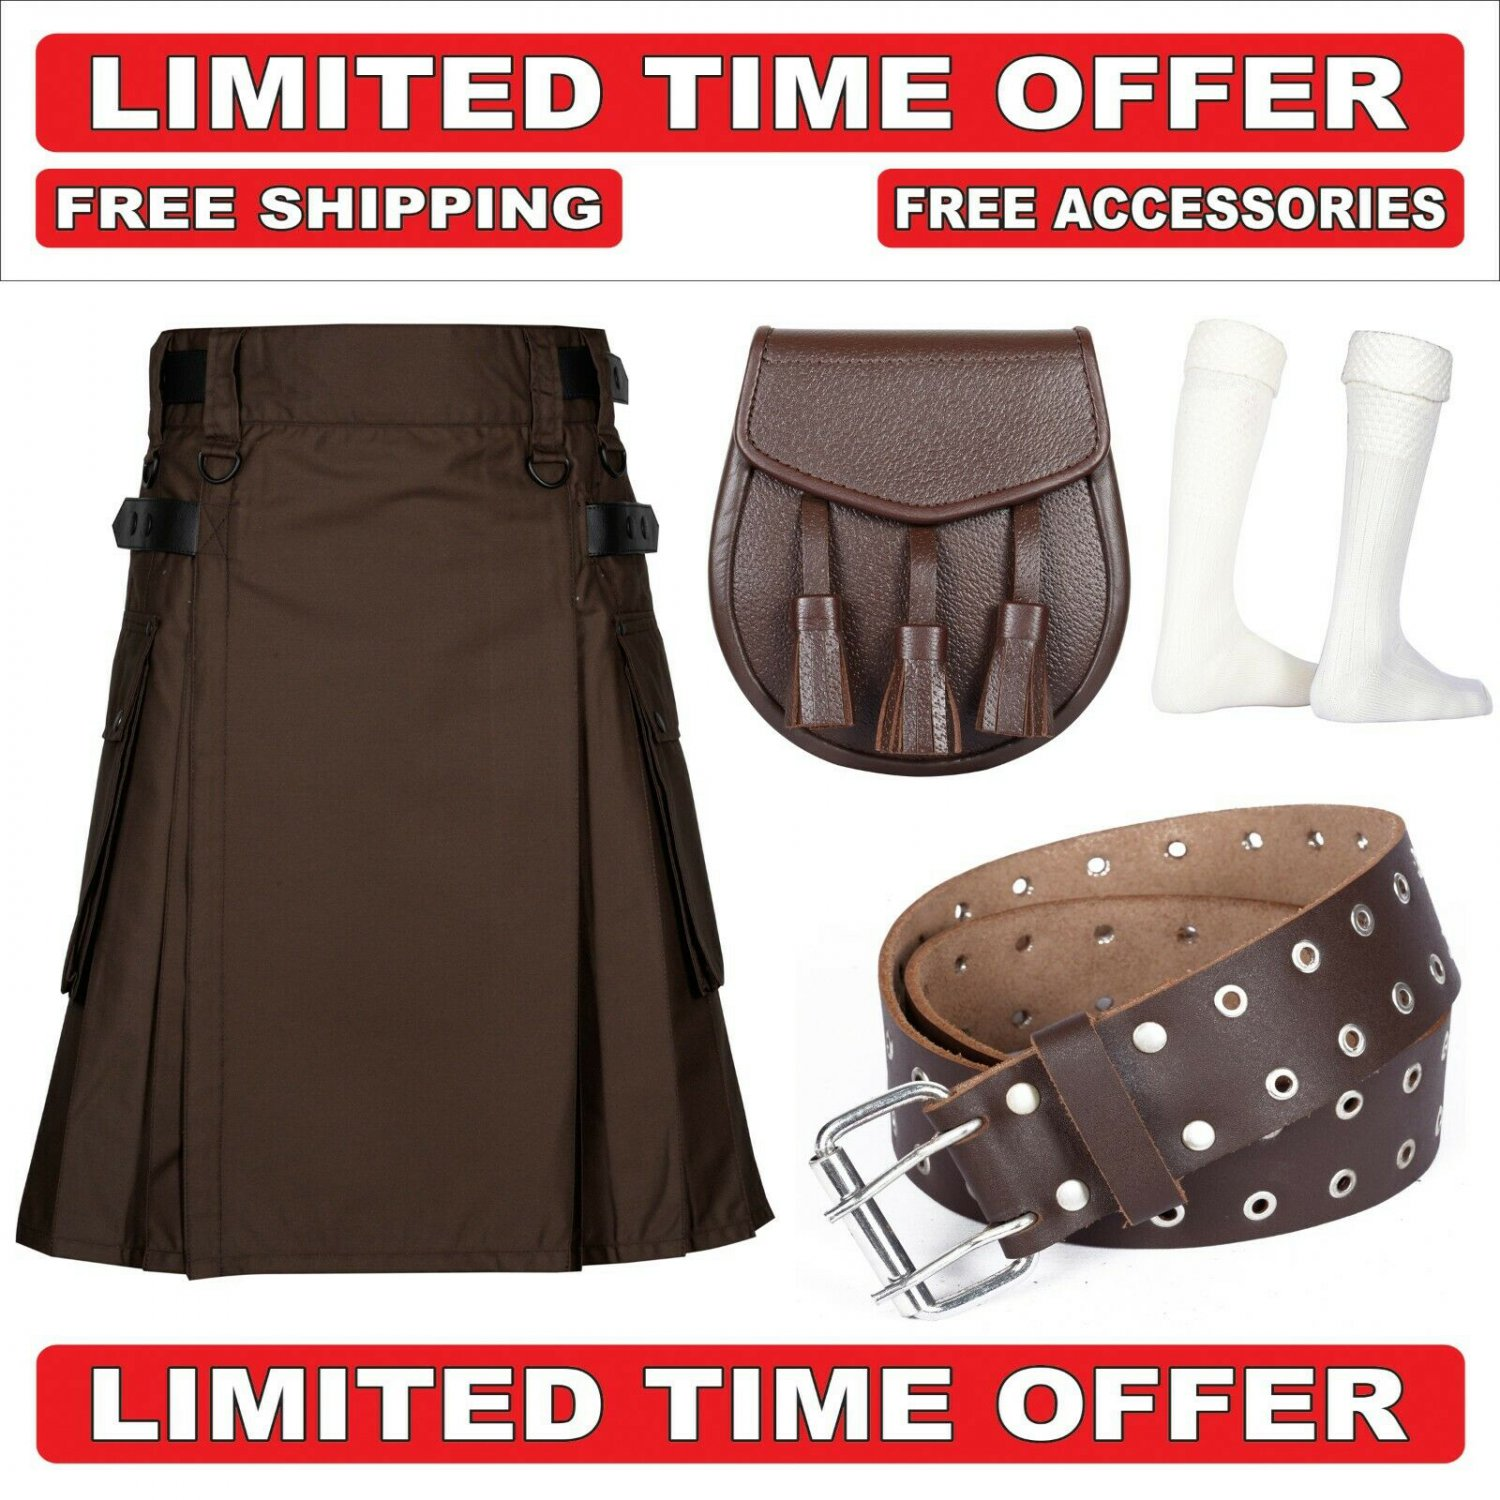 40 Size Men's Cotton Utility Scottish Kilt With Free Accessories and Free Shipping